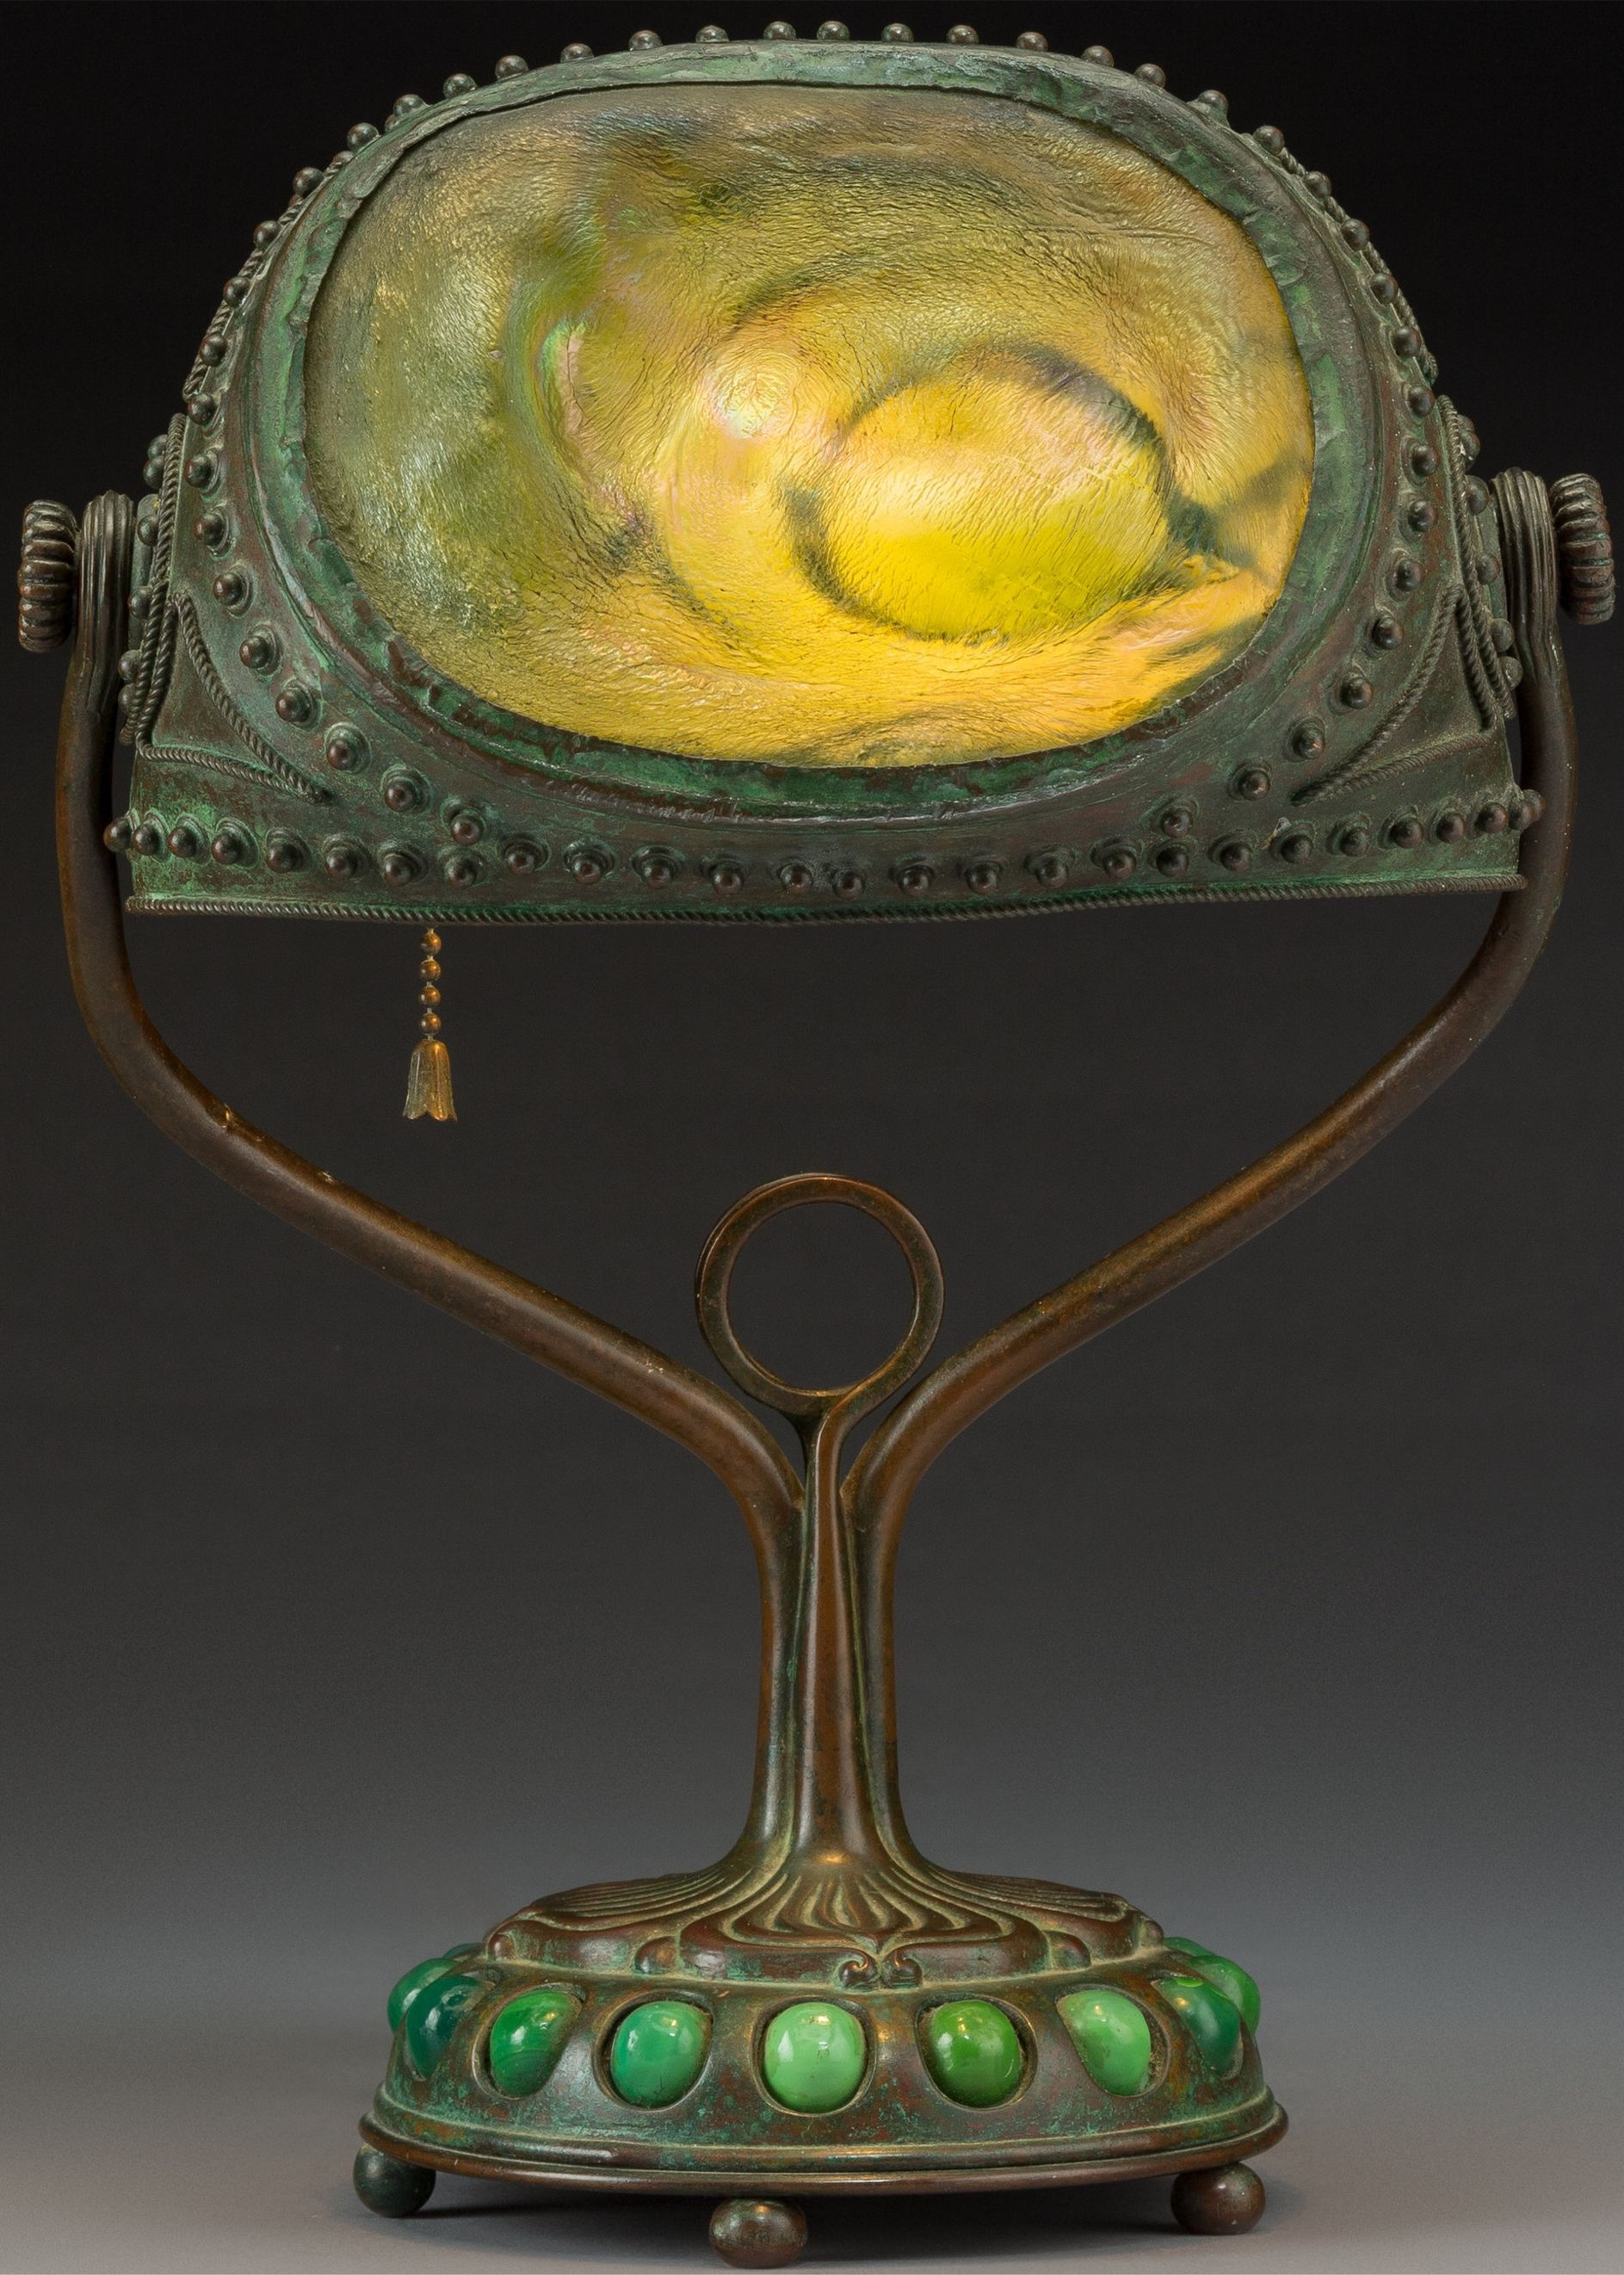 A Tiffany Studios Bronze And Turtleback Glass Tile Desk Lamp Corona New York Circa 1910 Marks Tiffany Studios New York Glass Tile Art Nouveau Lamps Lamp